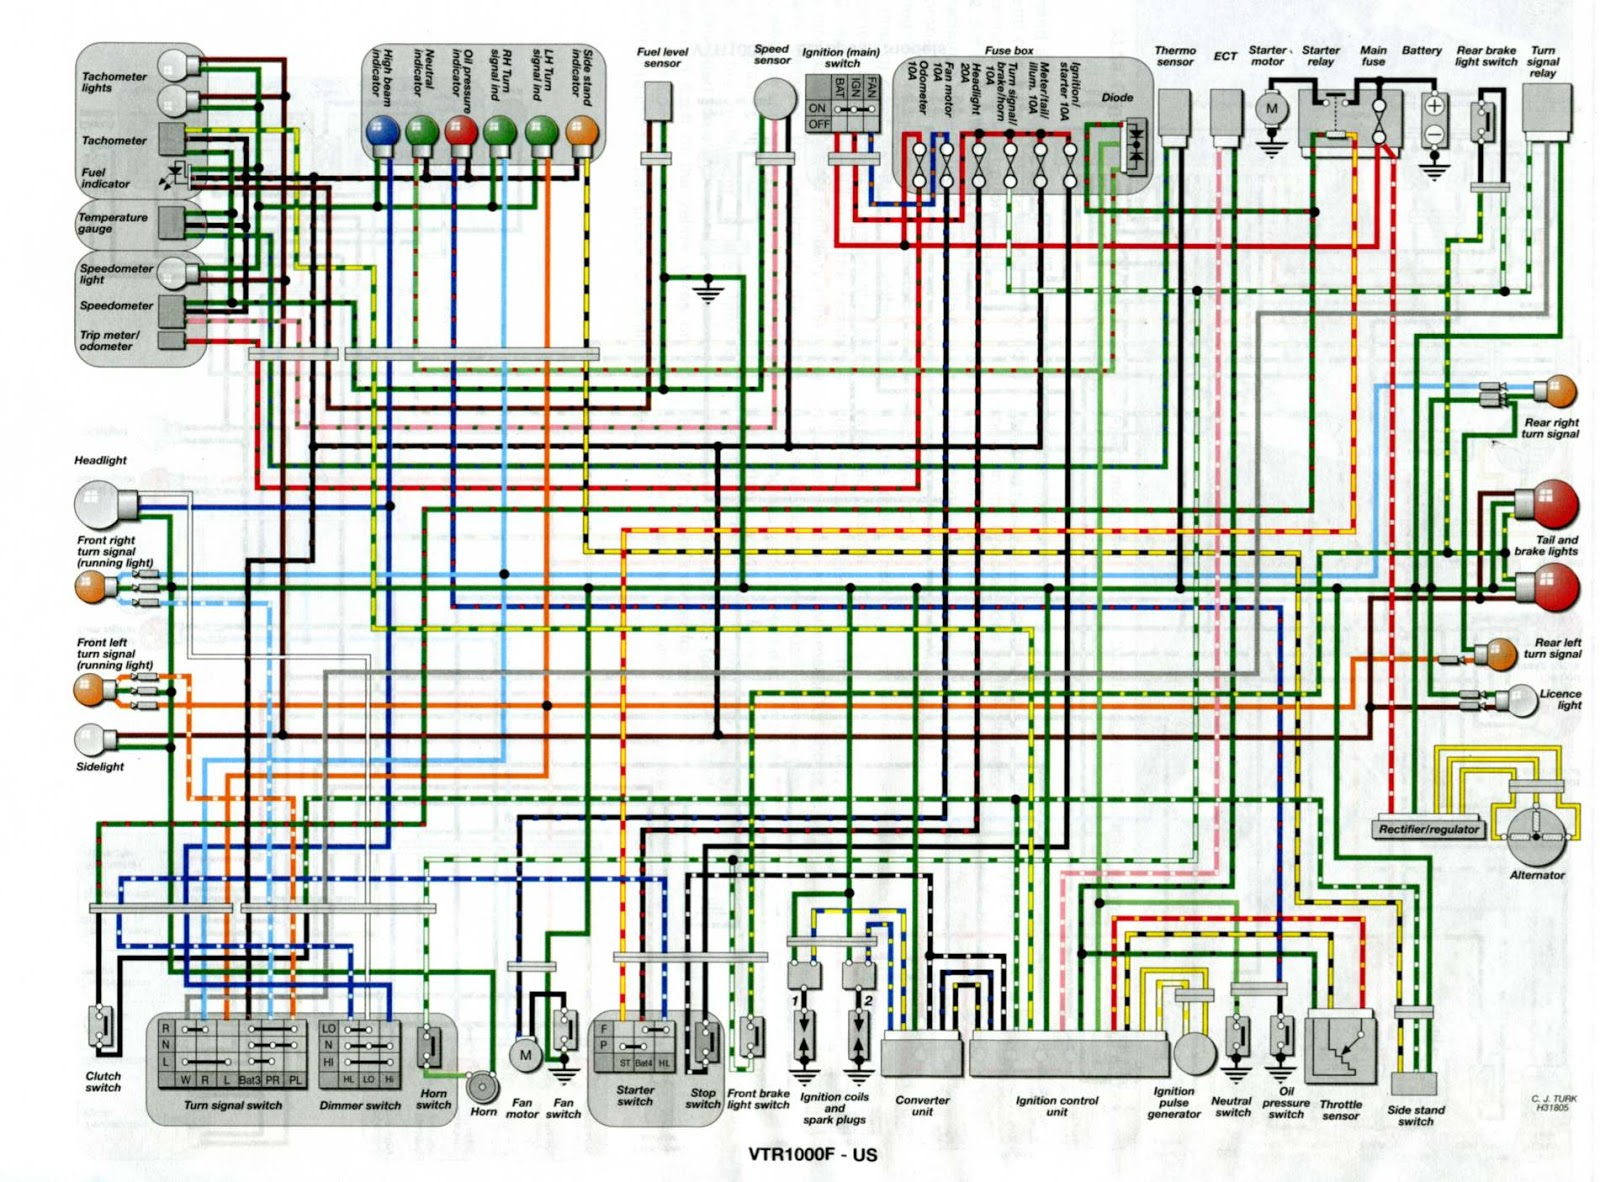 Fascinating Honda Cl 360 Wiring Diagram Images - Best Image Diagram ...